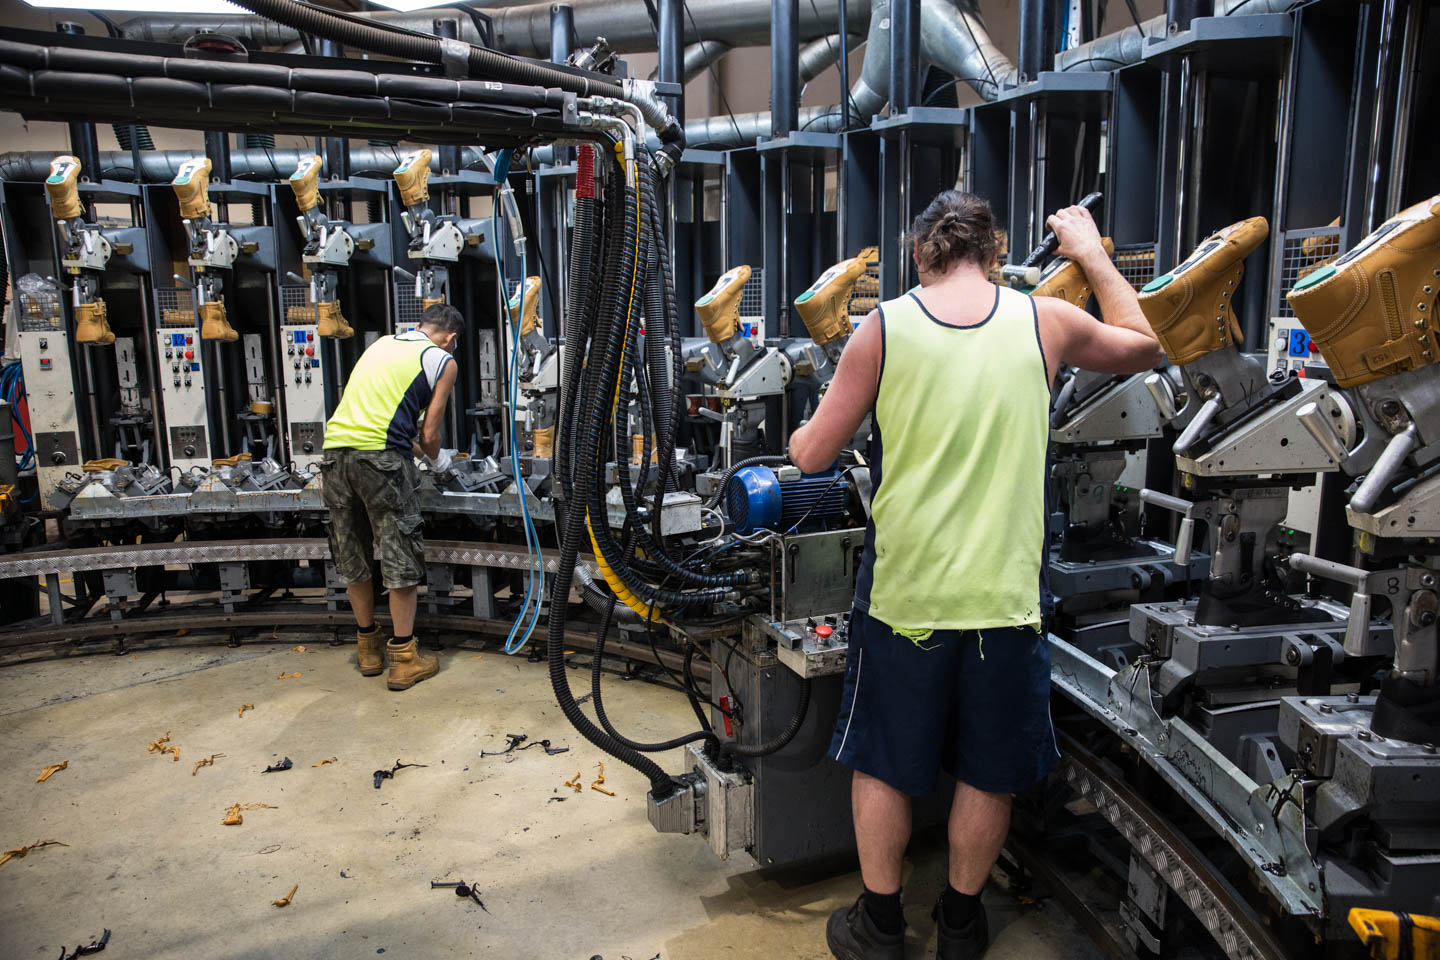 Steel Blue's Malaga facility produces 200 pairs of made-to-order boots a day.